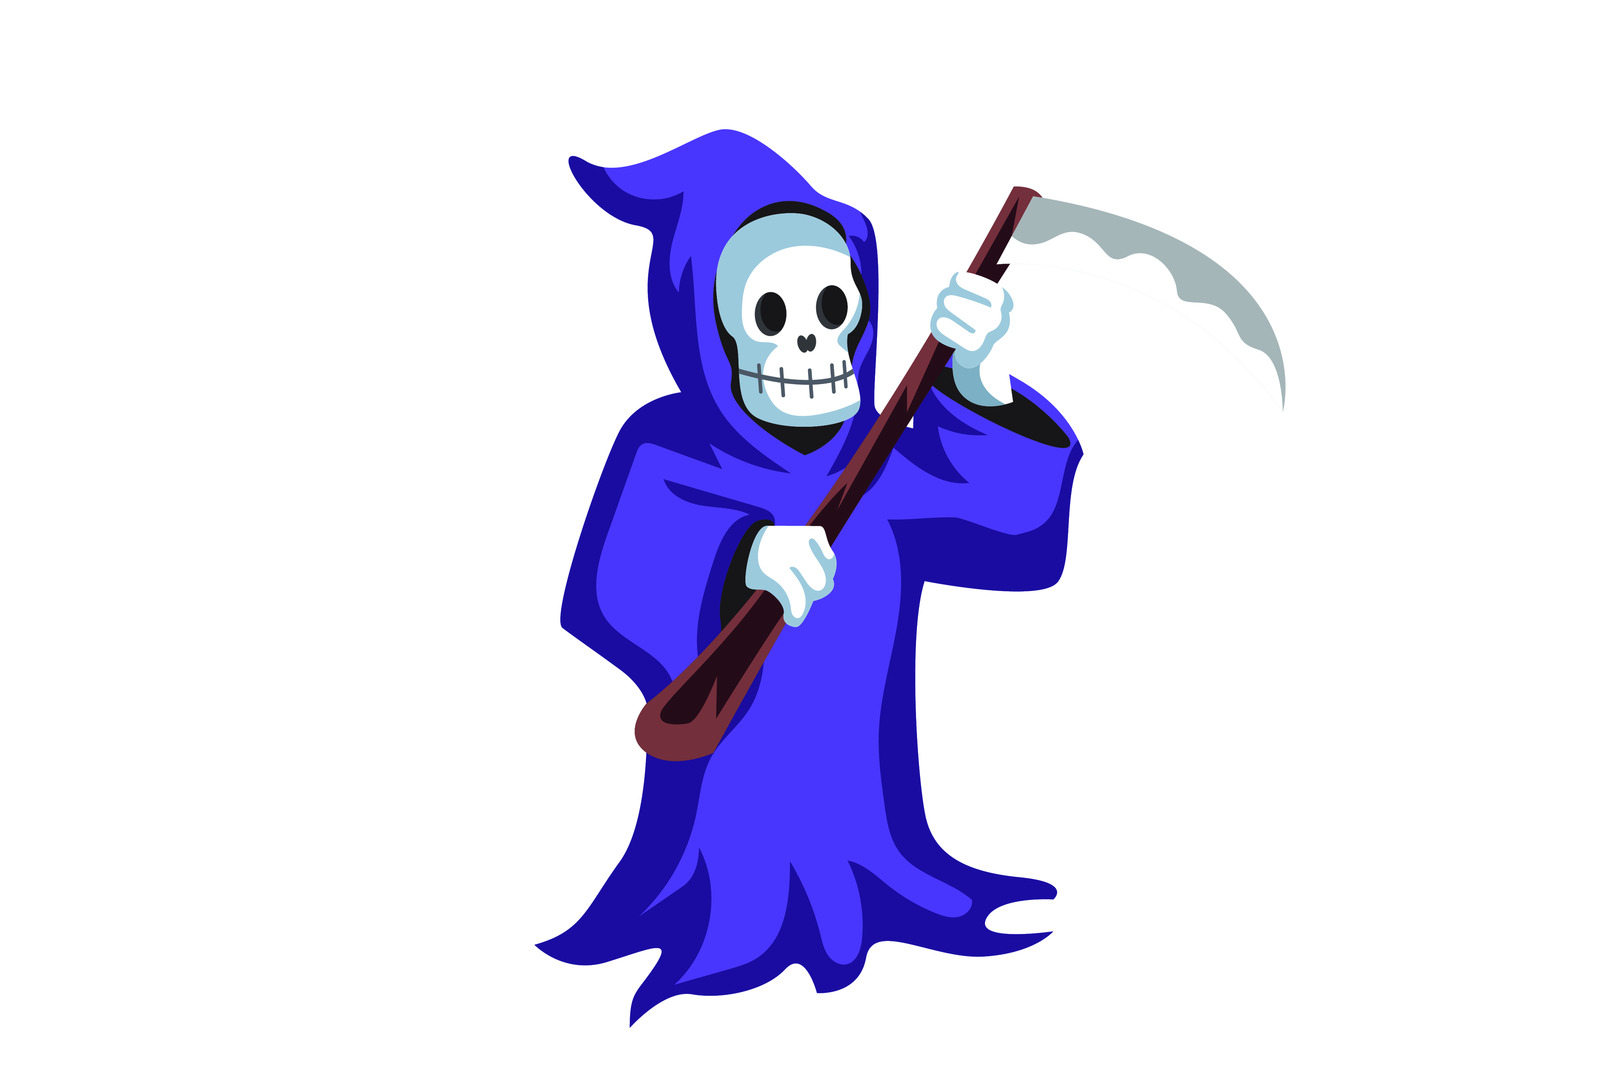 Death character